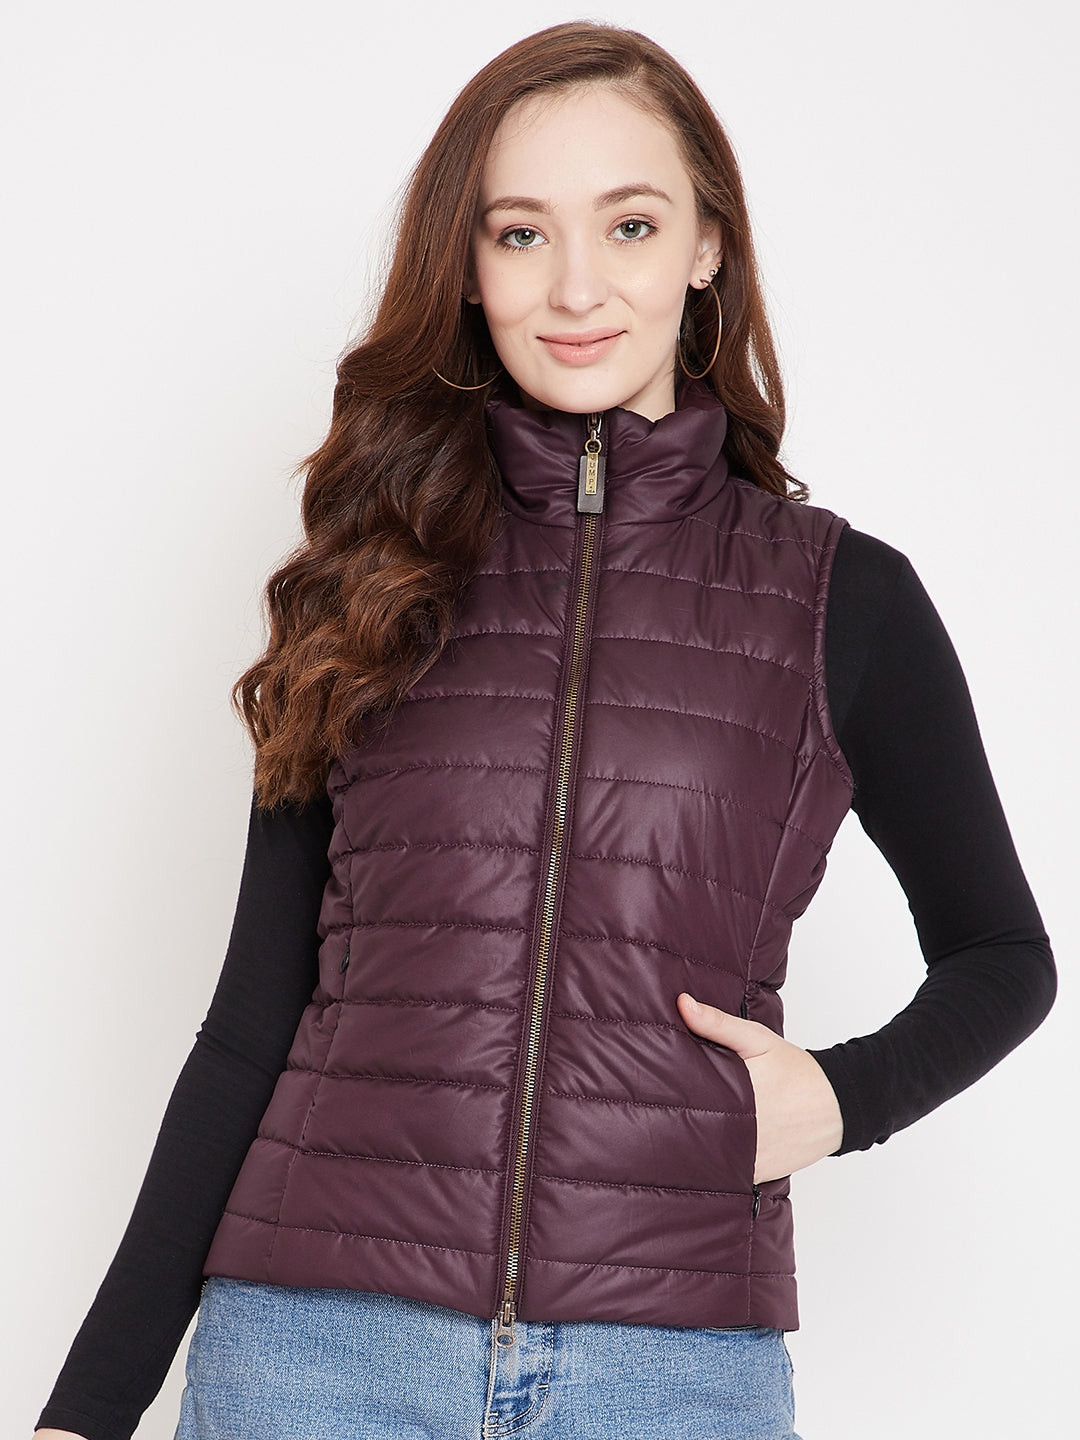 JUMP USA Womens Wine Quilted Vest Jacket